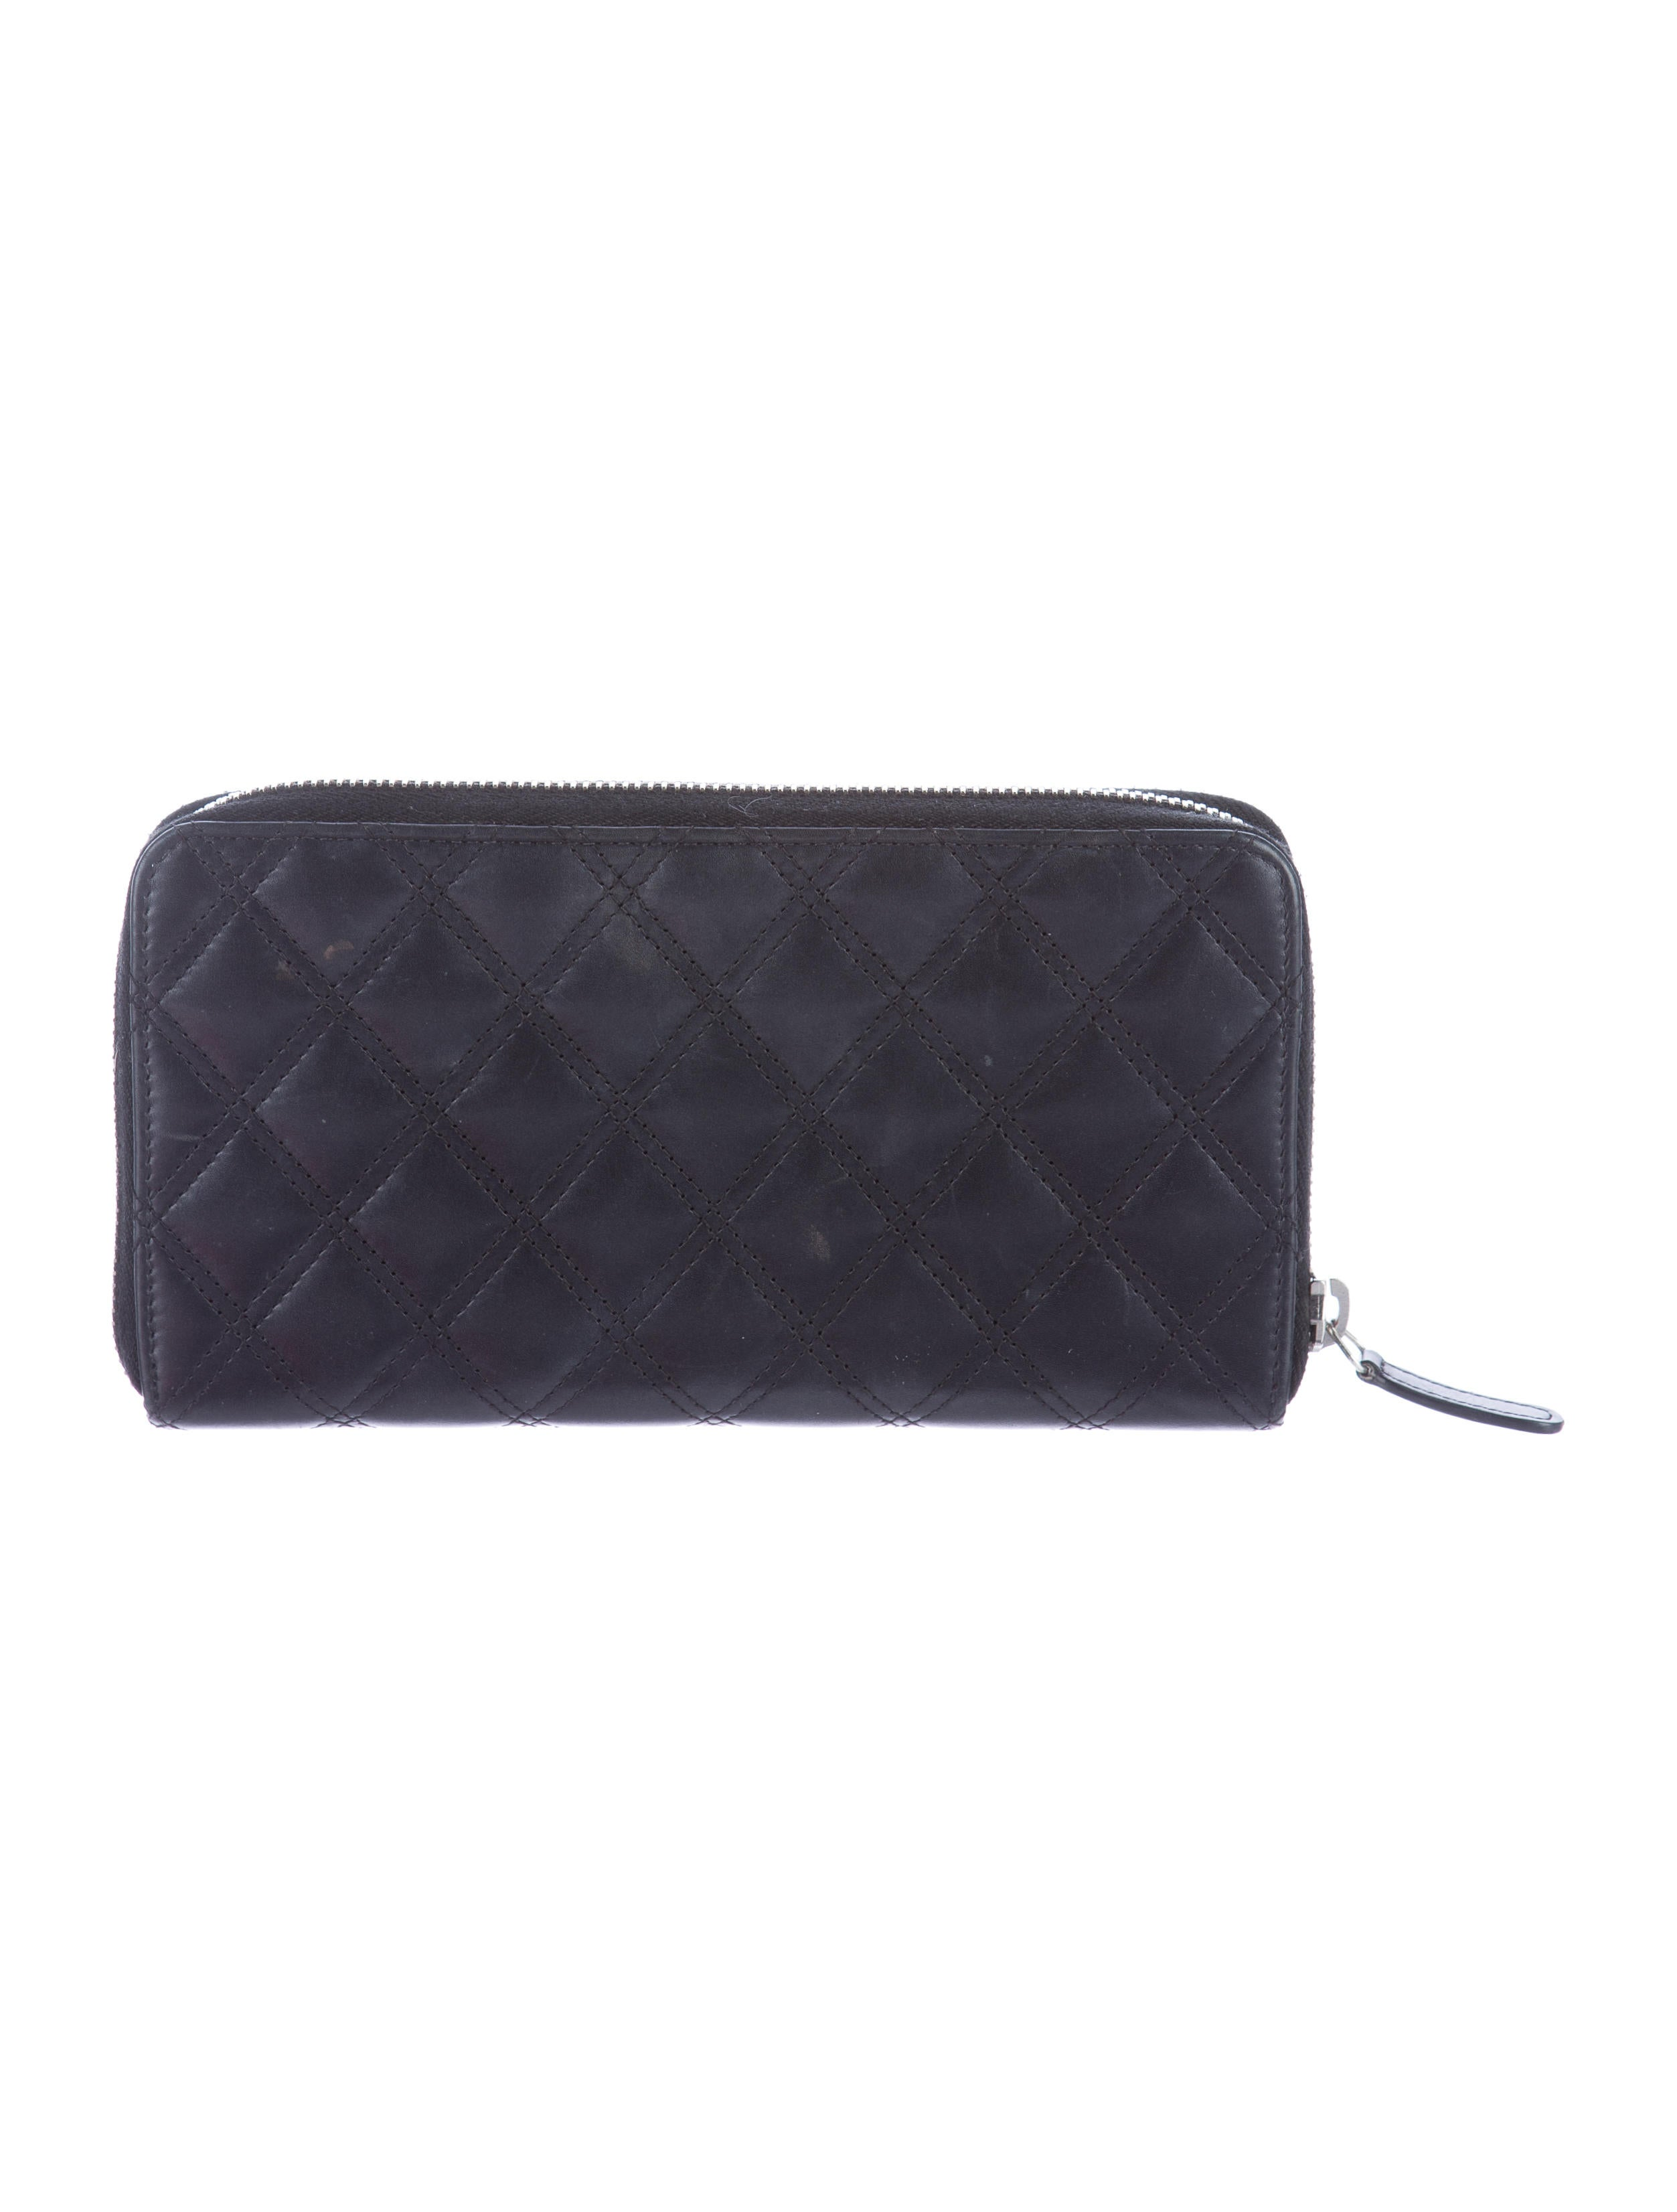 0d1e00bae140 Chanel L Gusset Zip Wallet | Stanford Center for Opportunity Policy ...